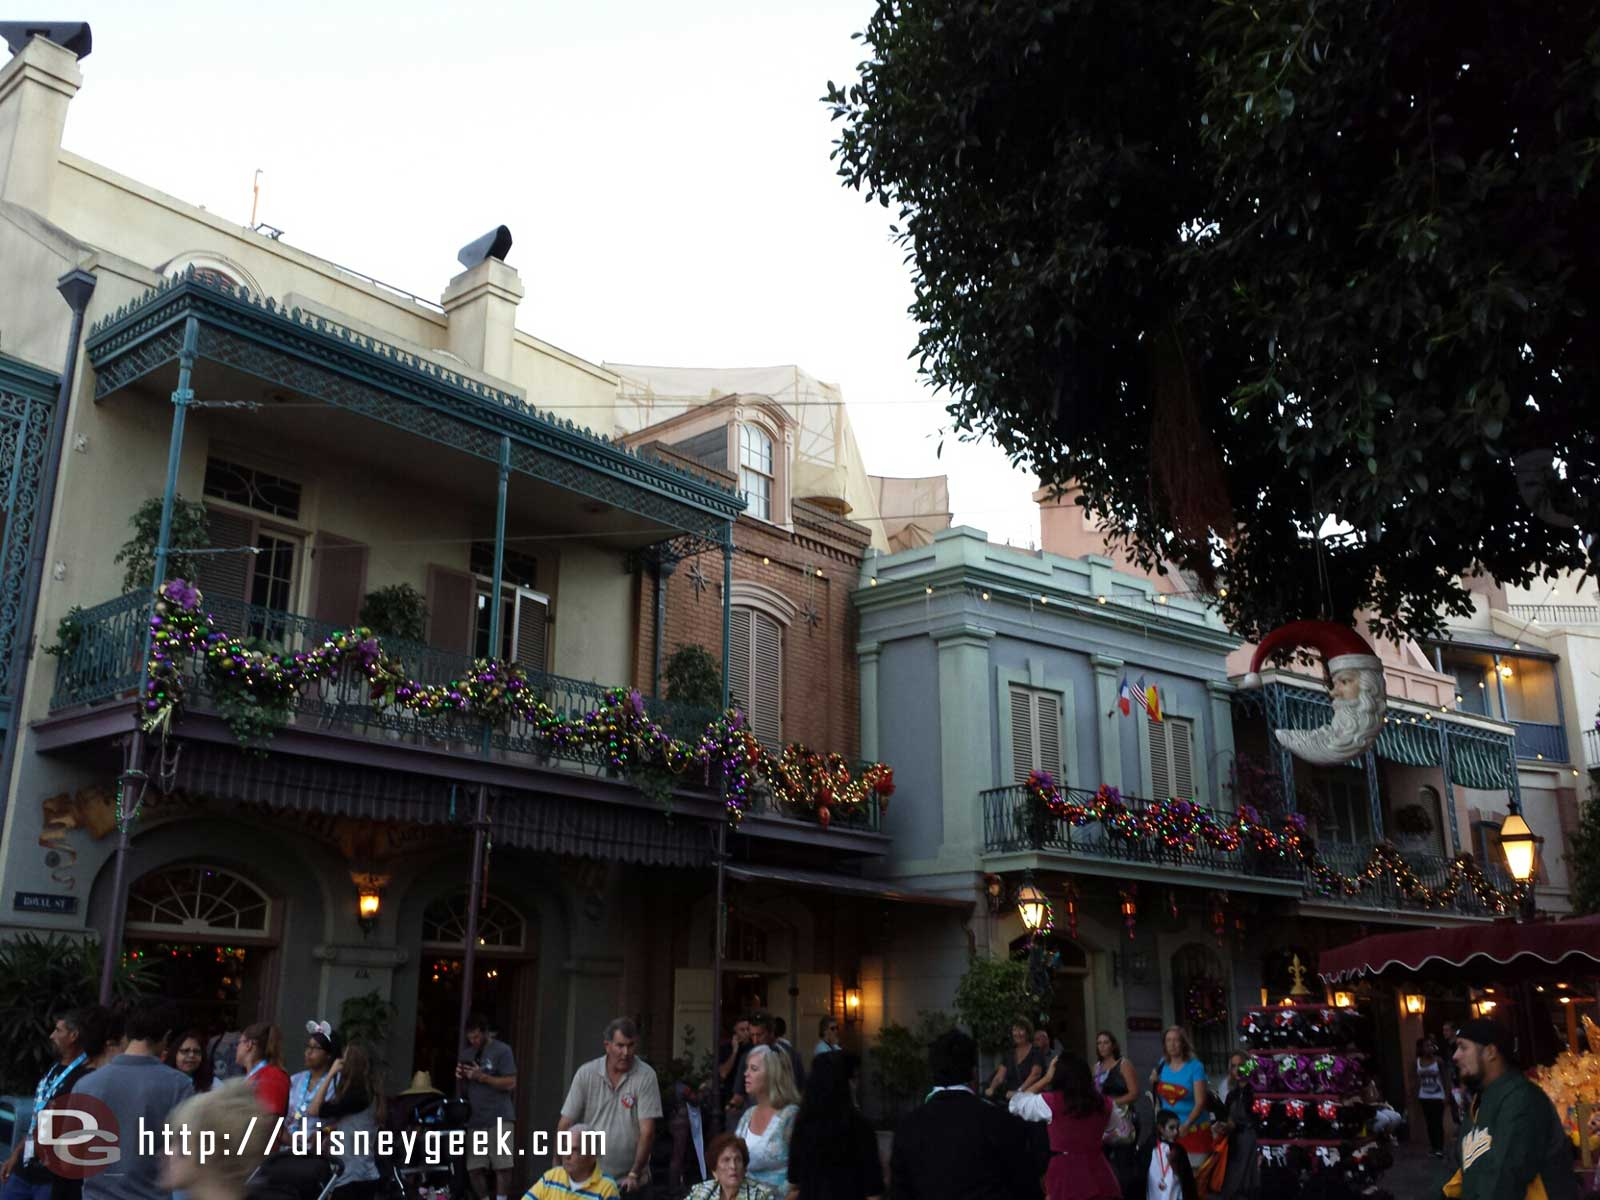 New Orleans Square has most of its Christmas decorations up #Disneyland